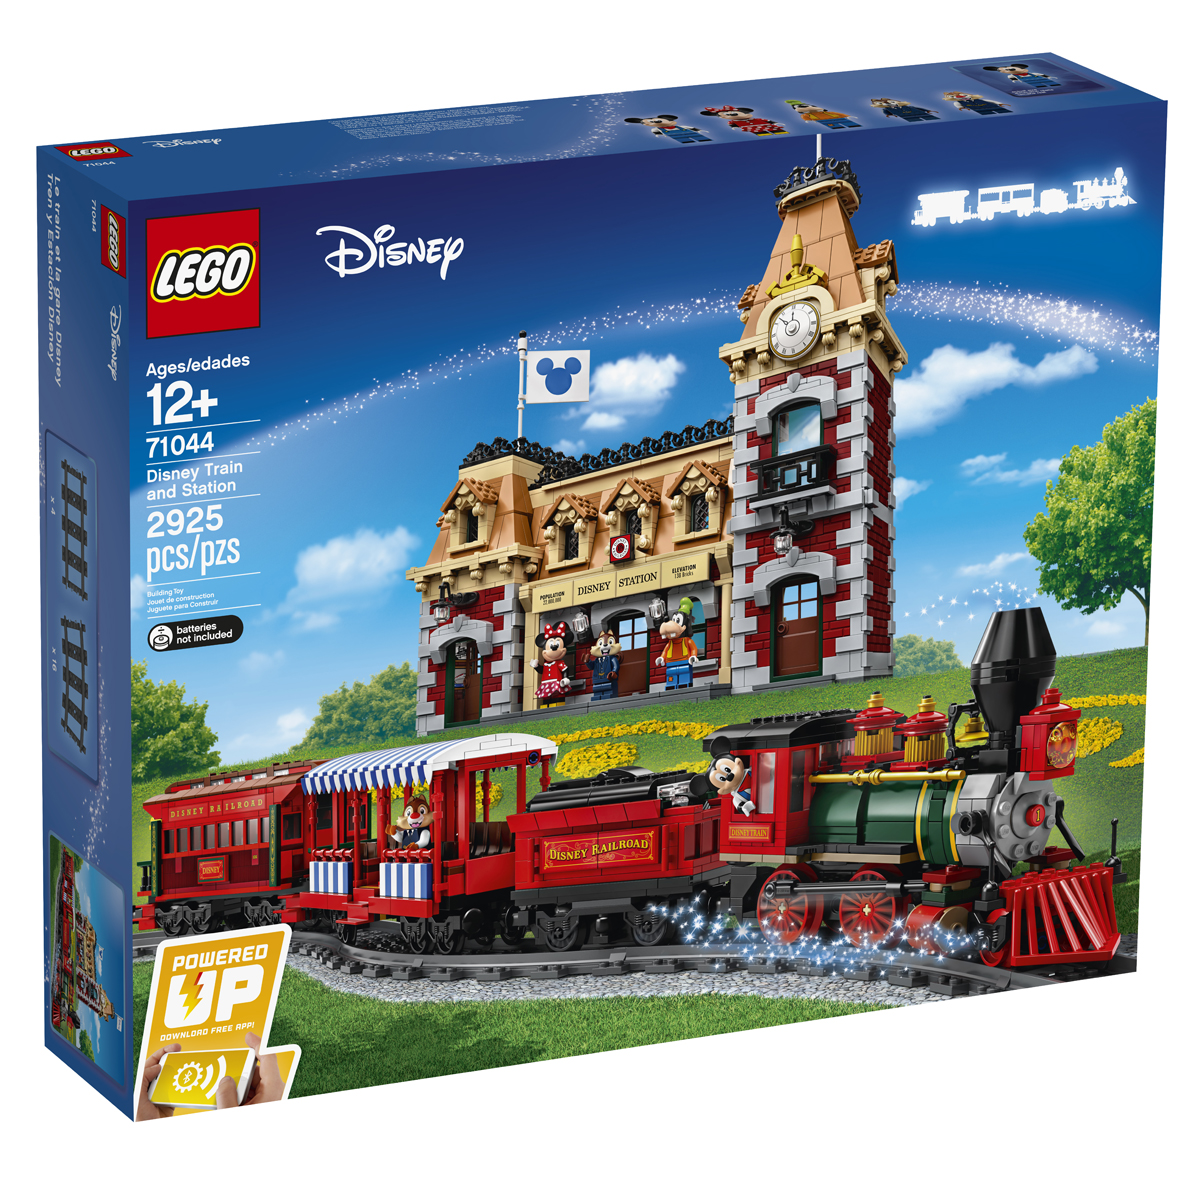 LEGO Disney Train and Station (71044) Now Available For LEGO VIPs